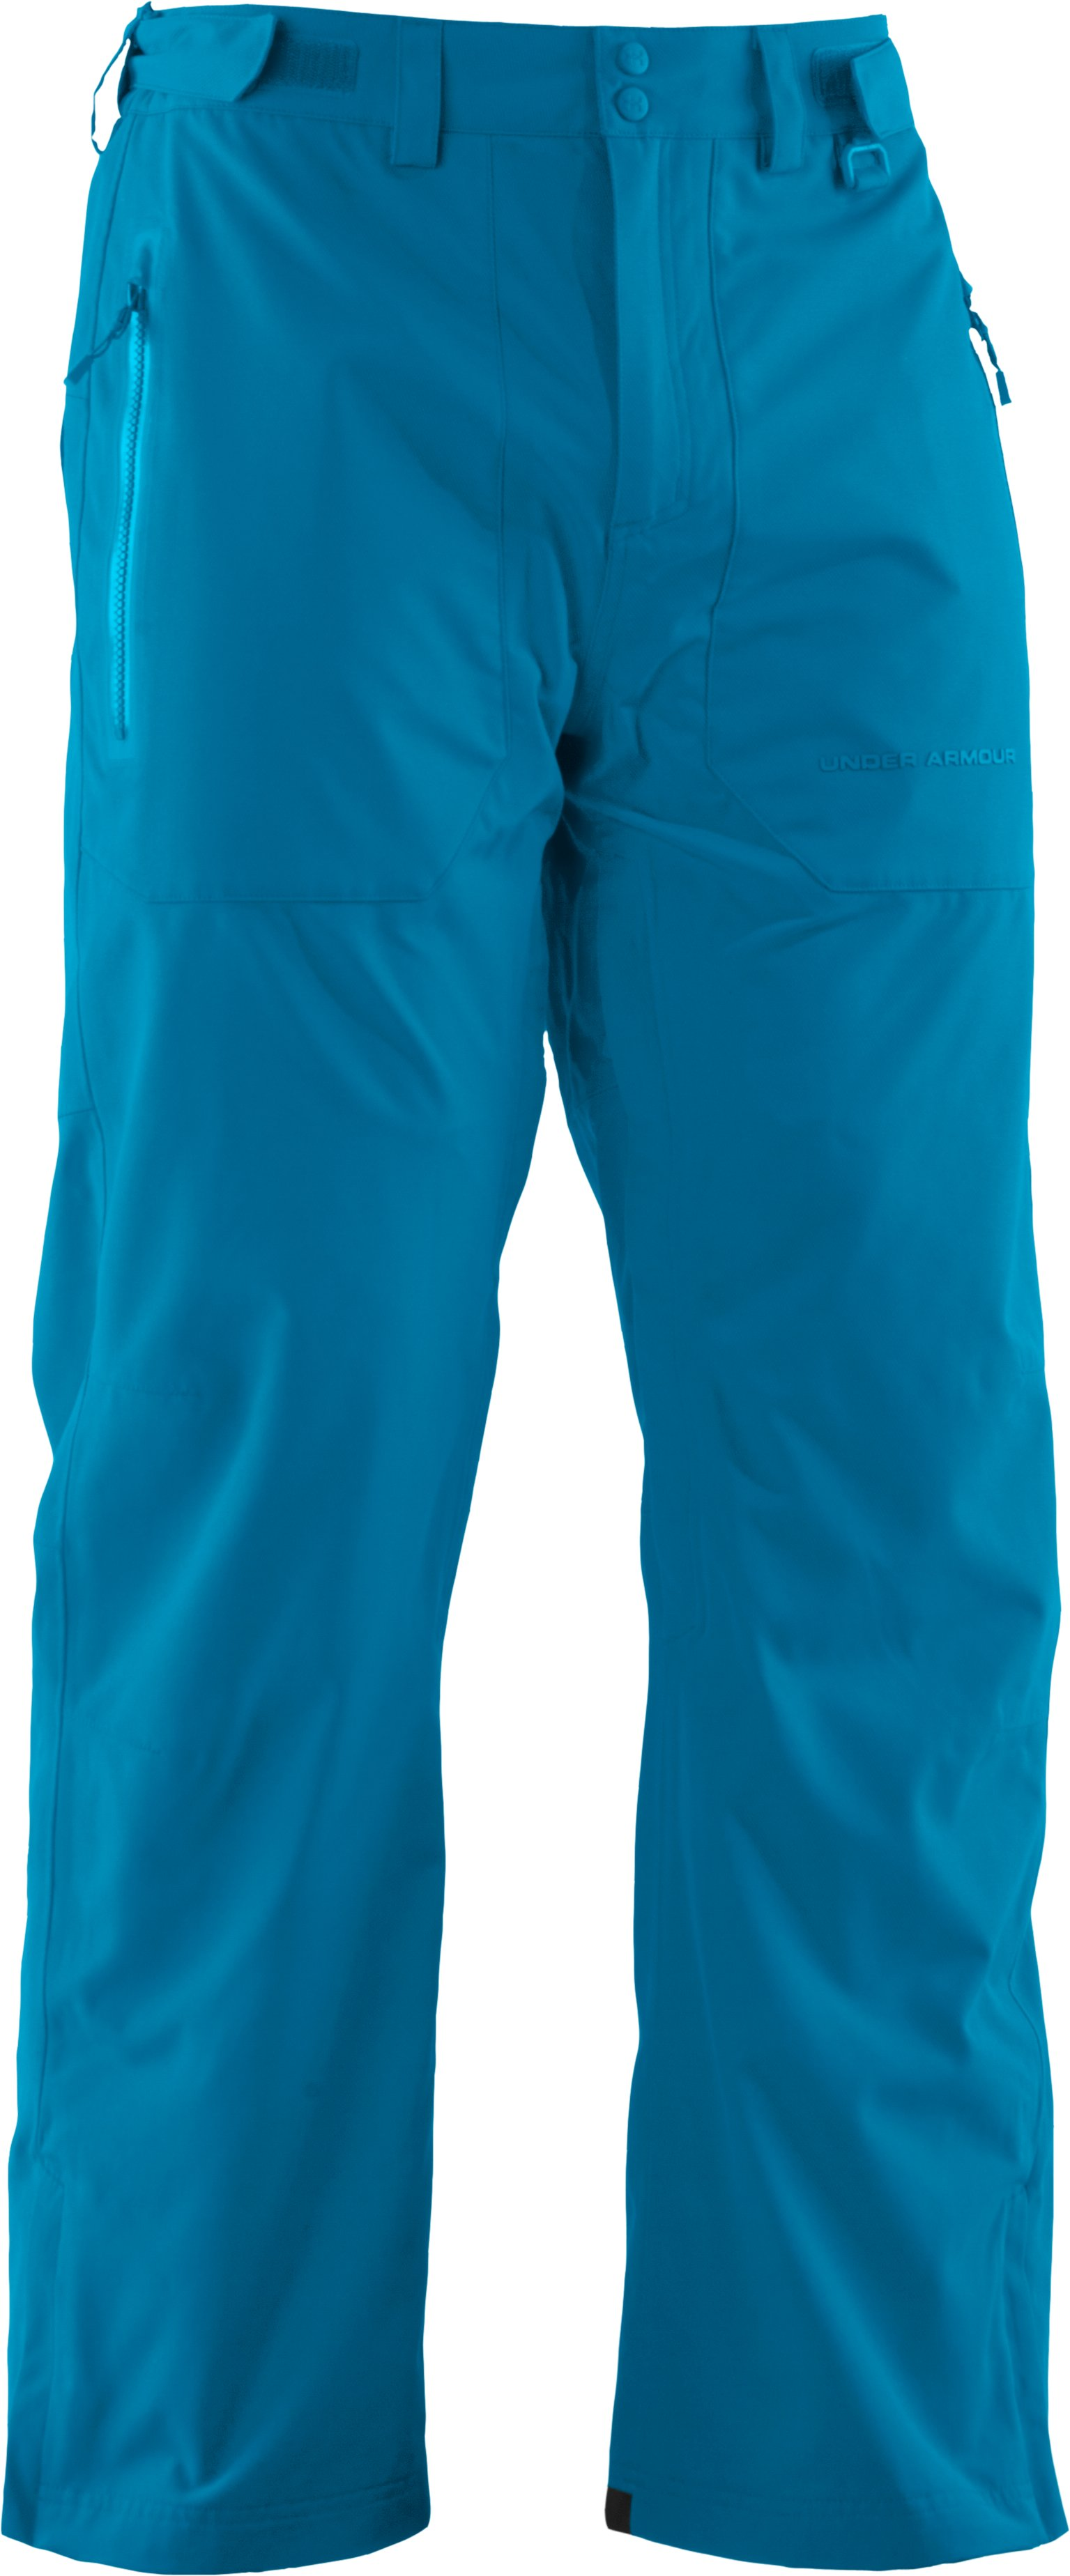 Men's ColdGear® Infrared Hatcher Pants, SNORKEL